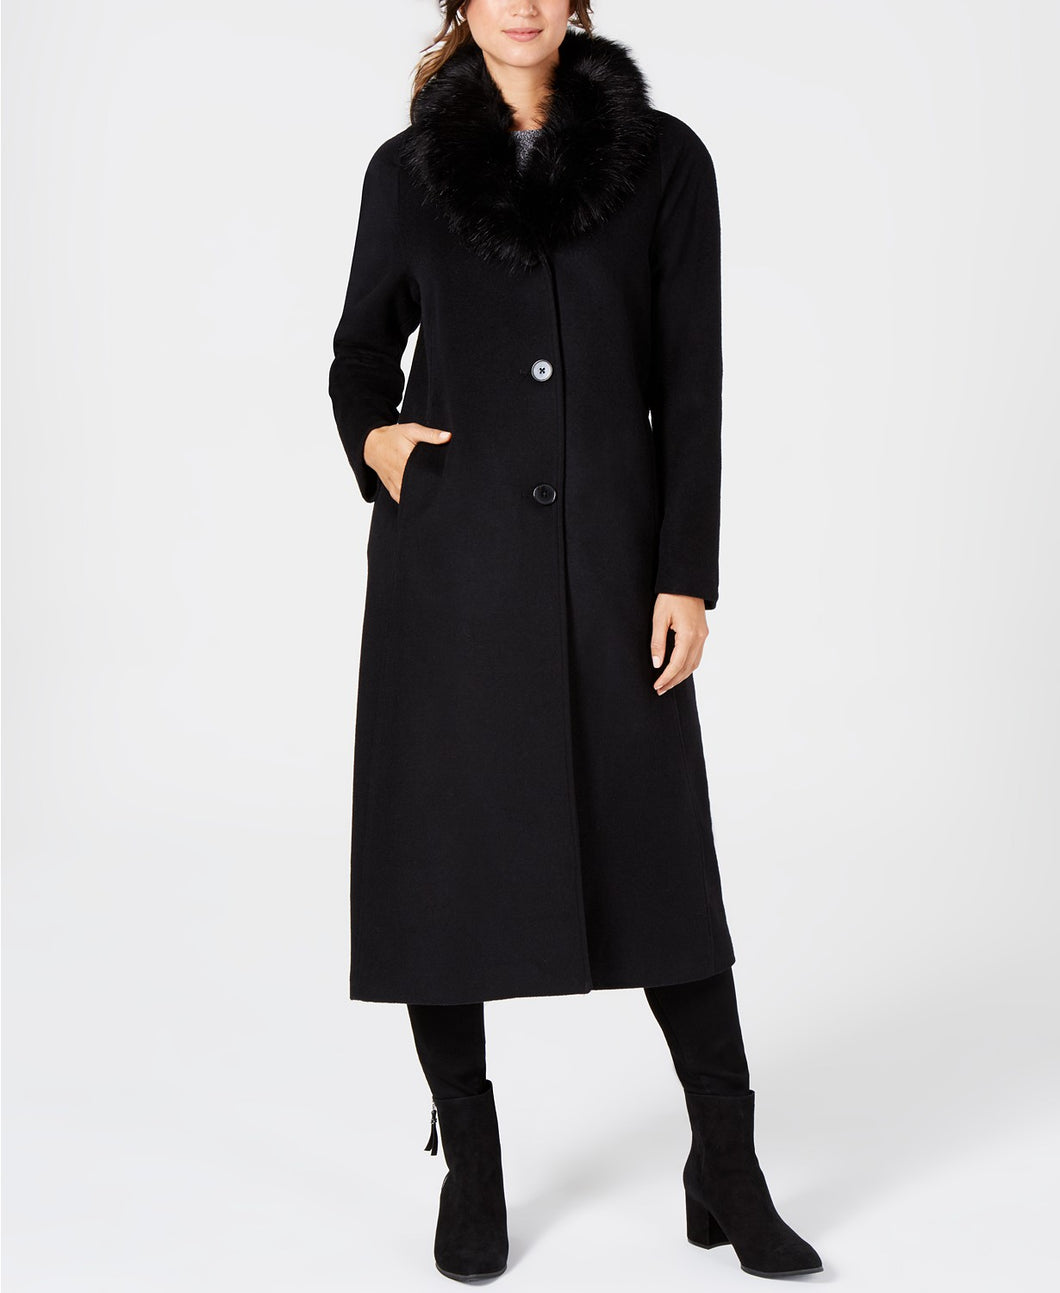 JONES NEW YORK - Faux Fur Collar Maxi Coat, Black (Size 6/S)